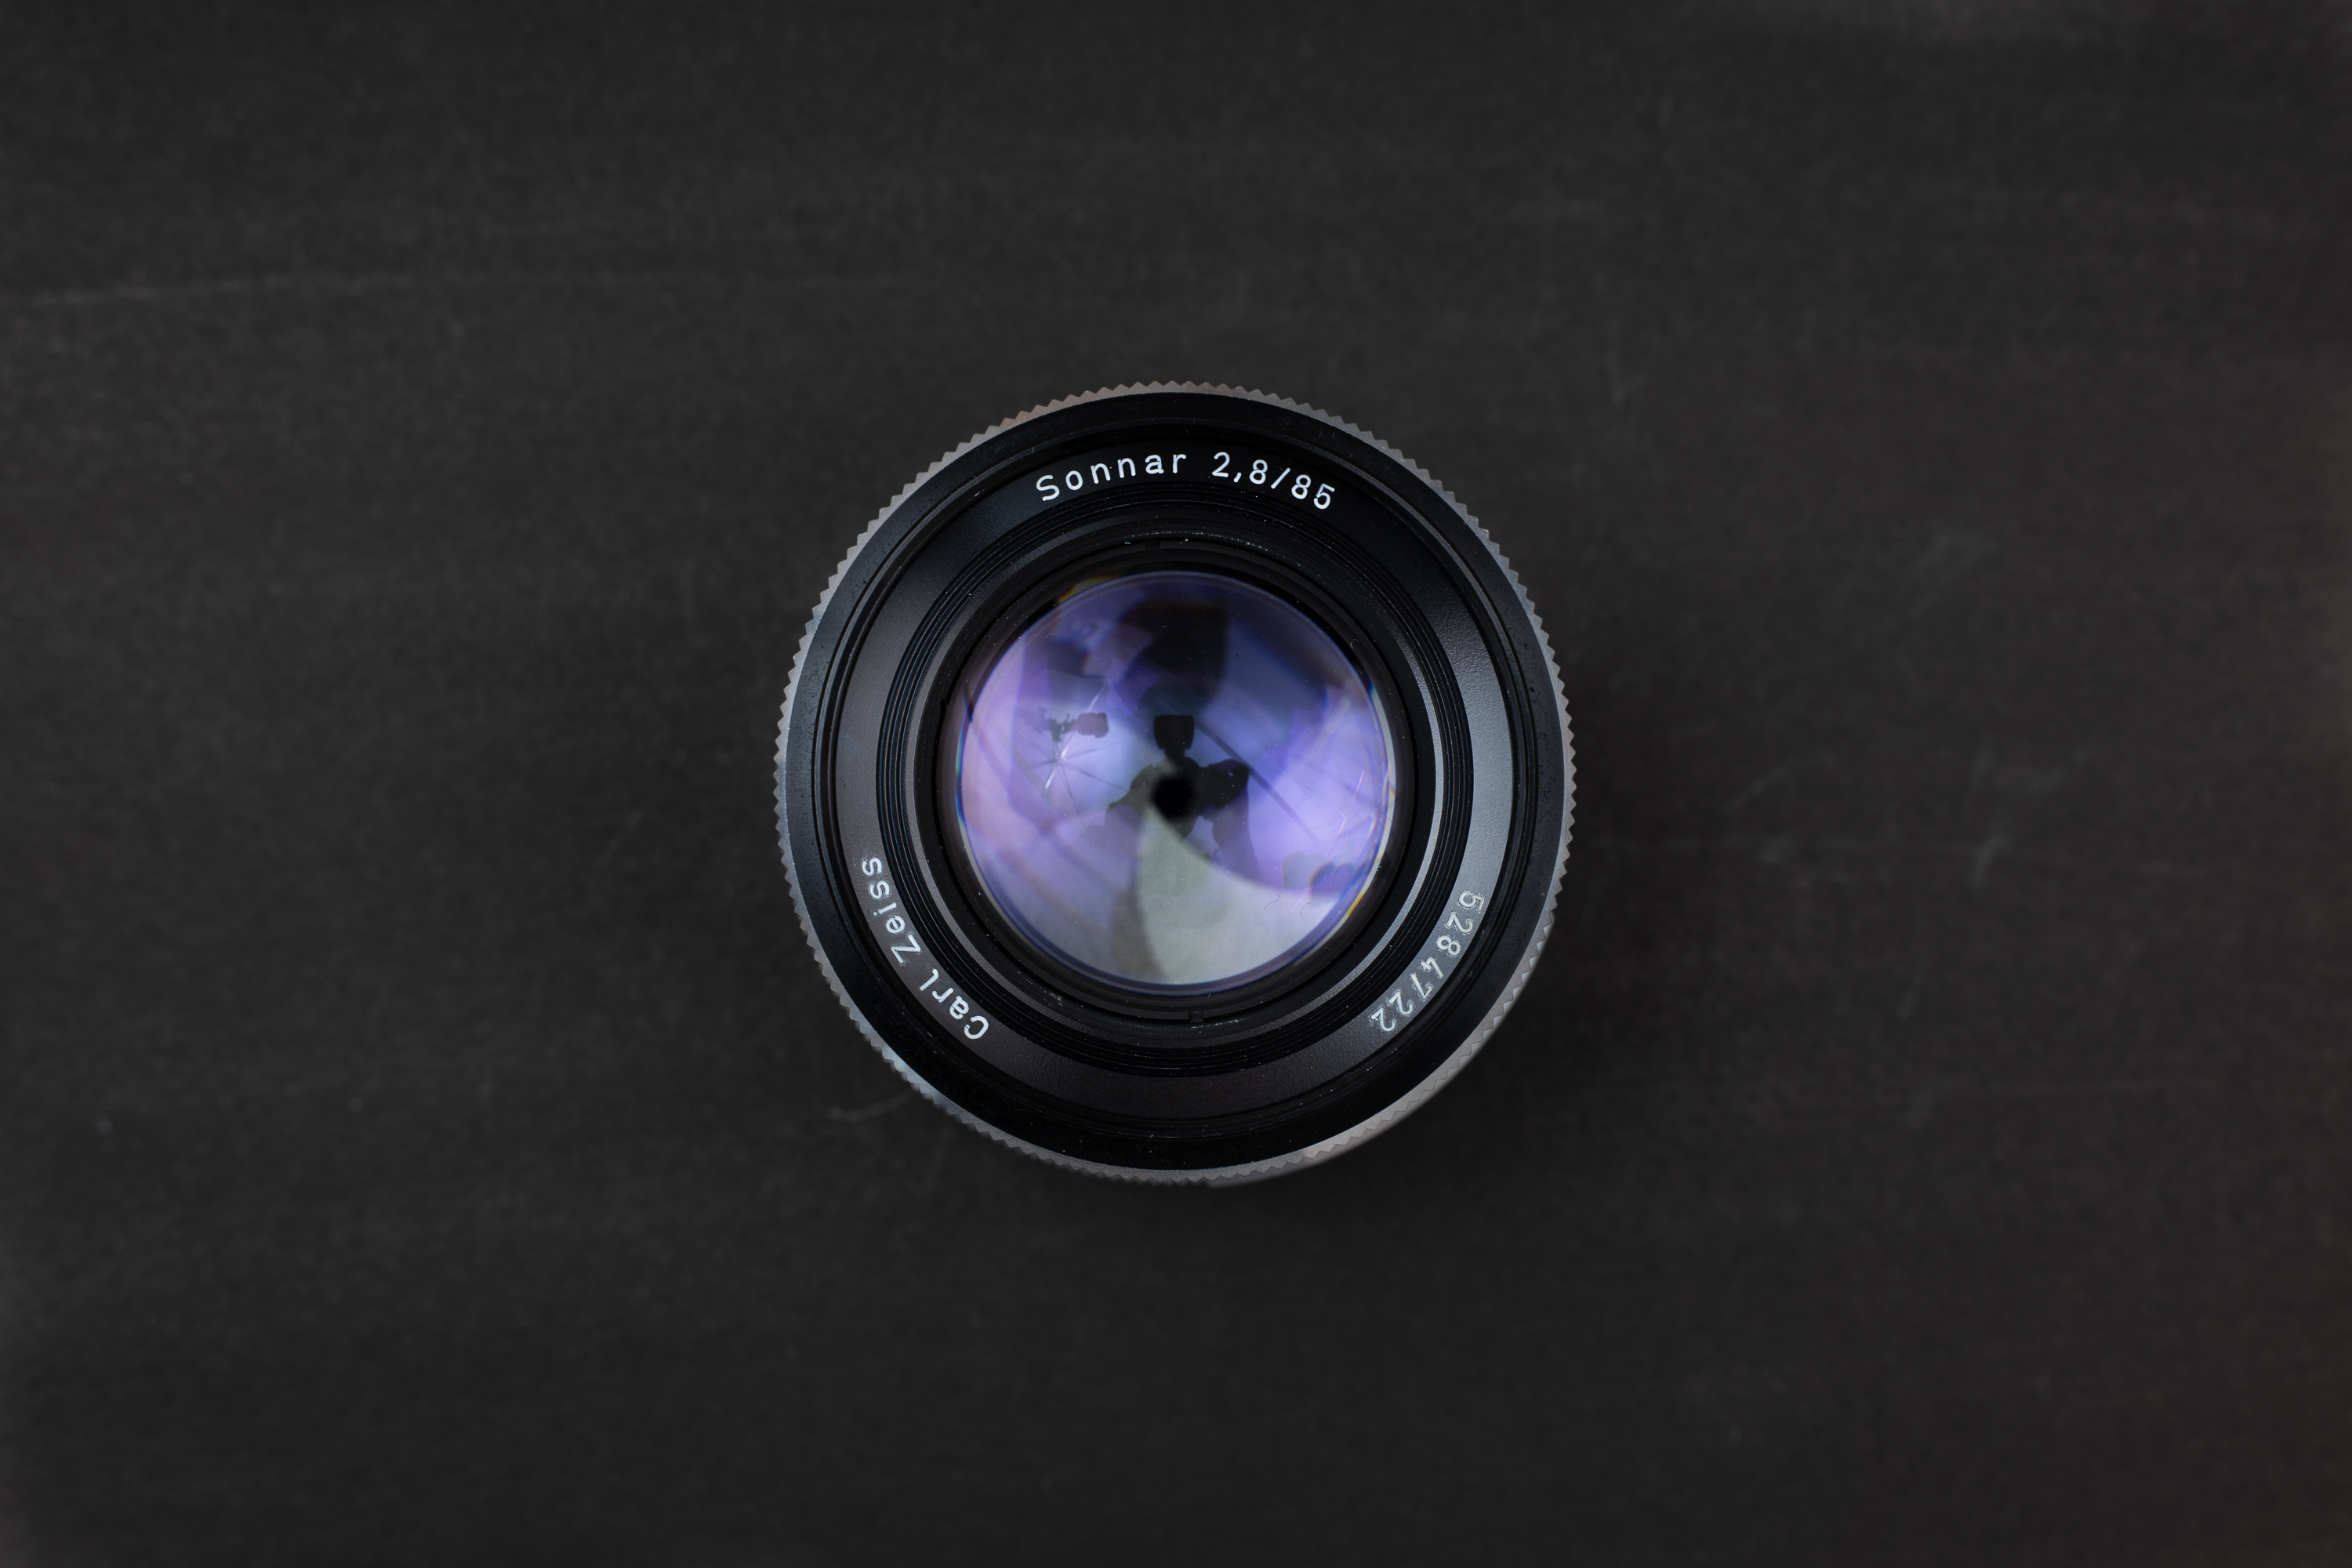 Carl Zeiss Sonnar 85mm f2.8